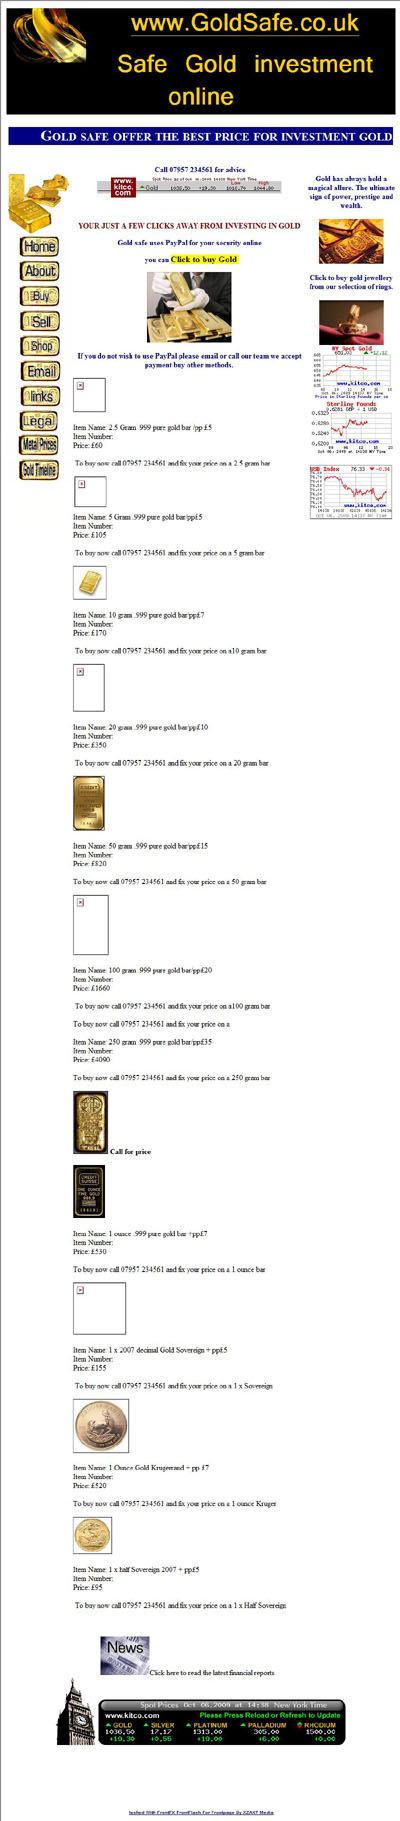 Gold Safe's Gold Sovereigns Half Sovereigns Page